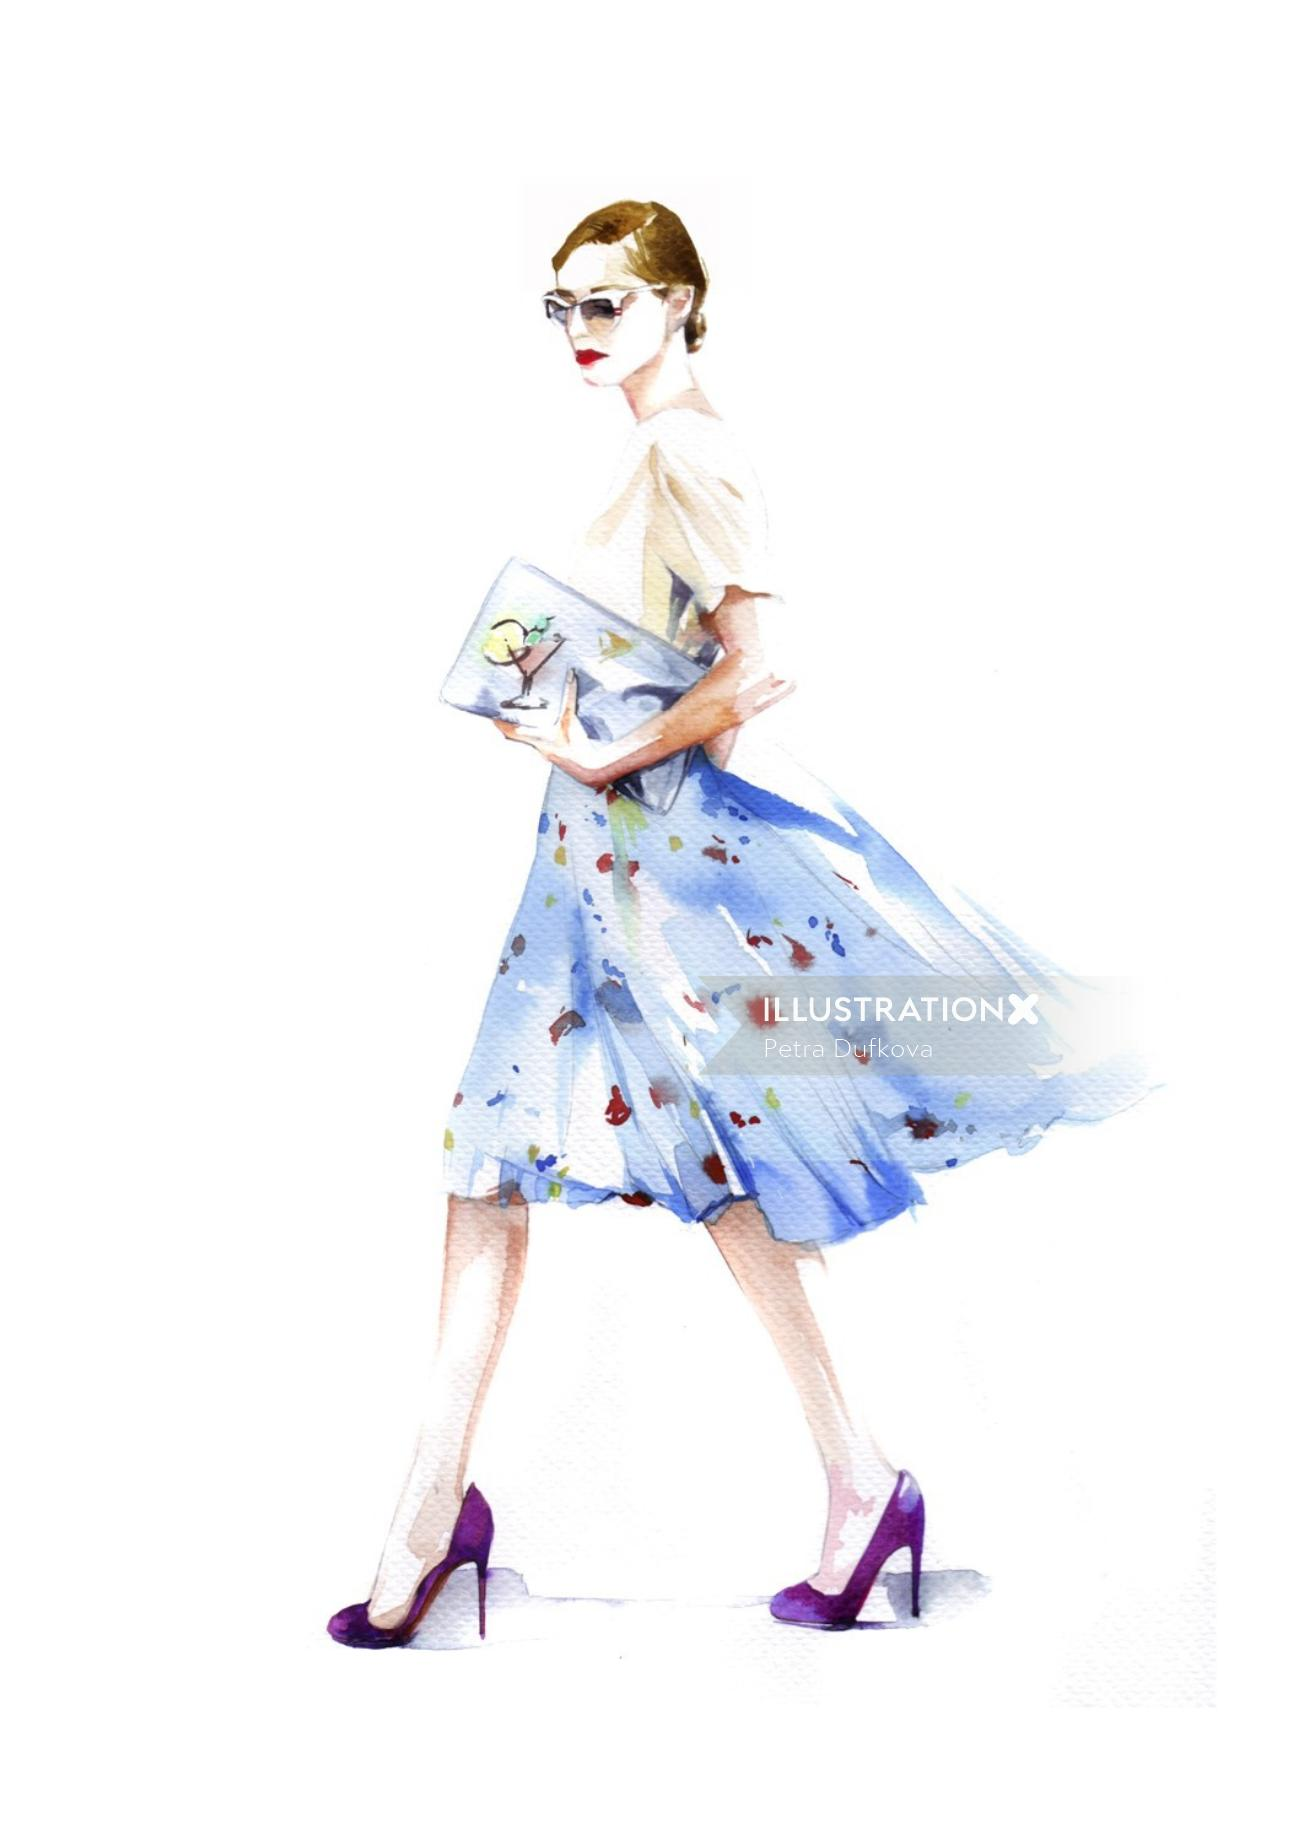 Fashion beauty with floral dress